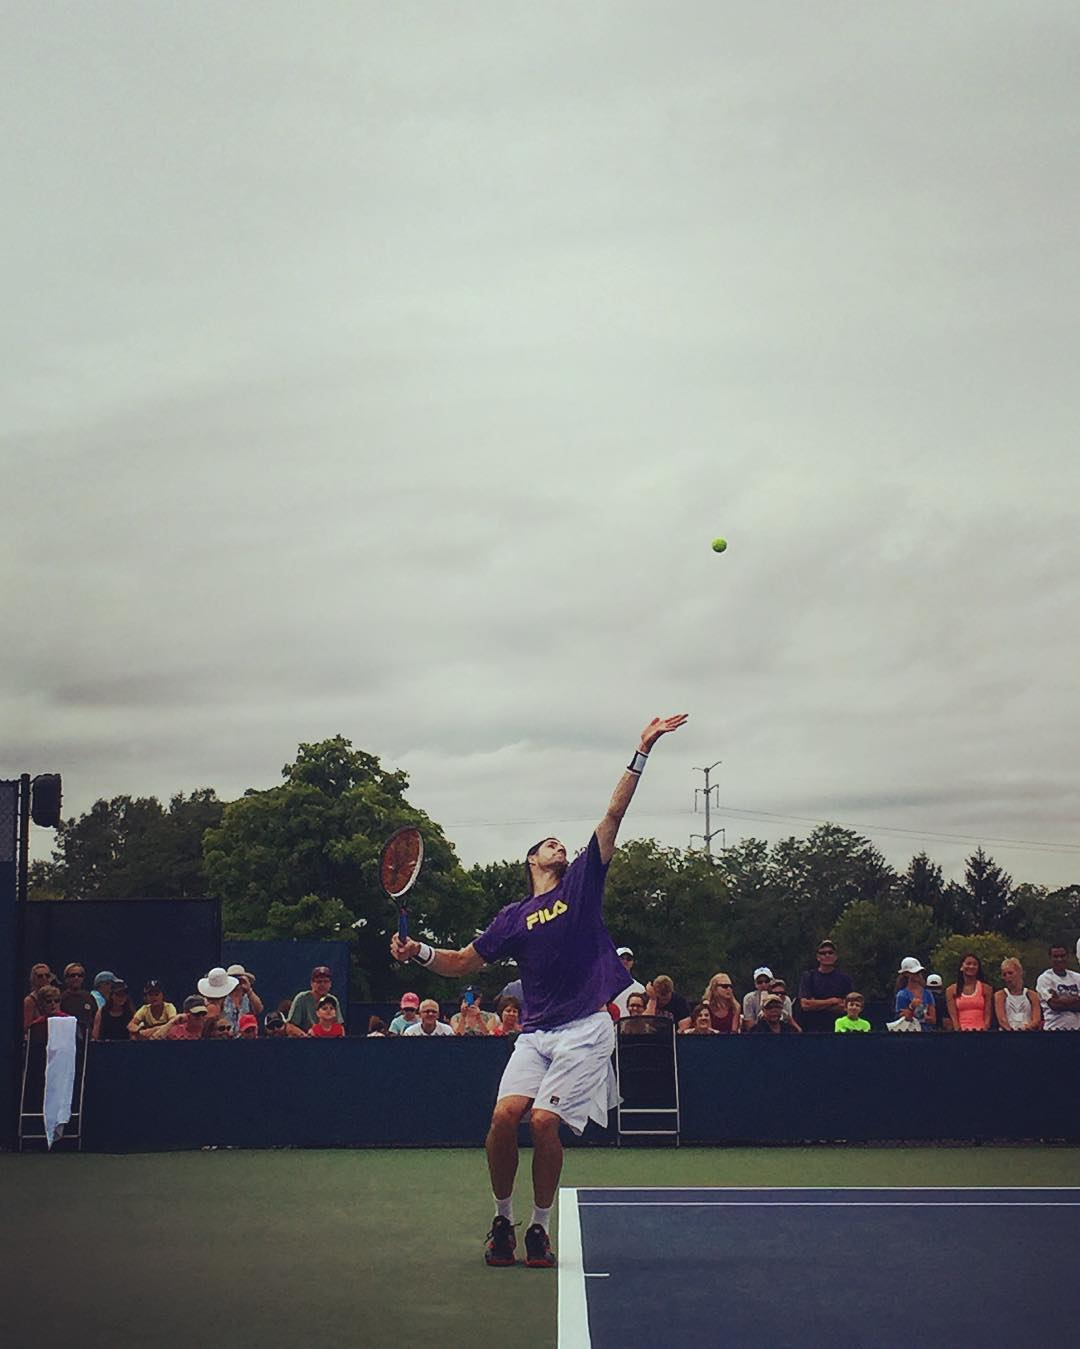 IMAGE: IG user @ajaosu / POST: Isner #cincytennis